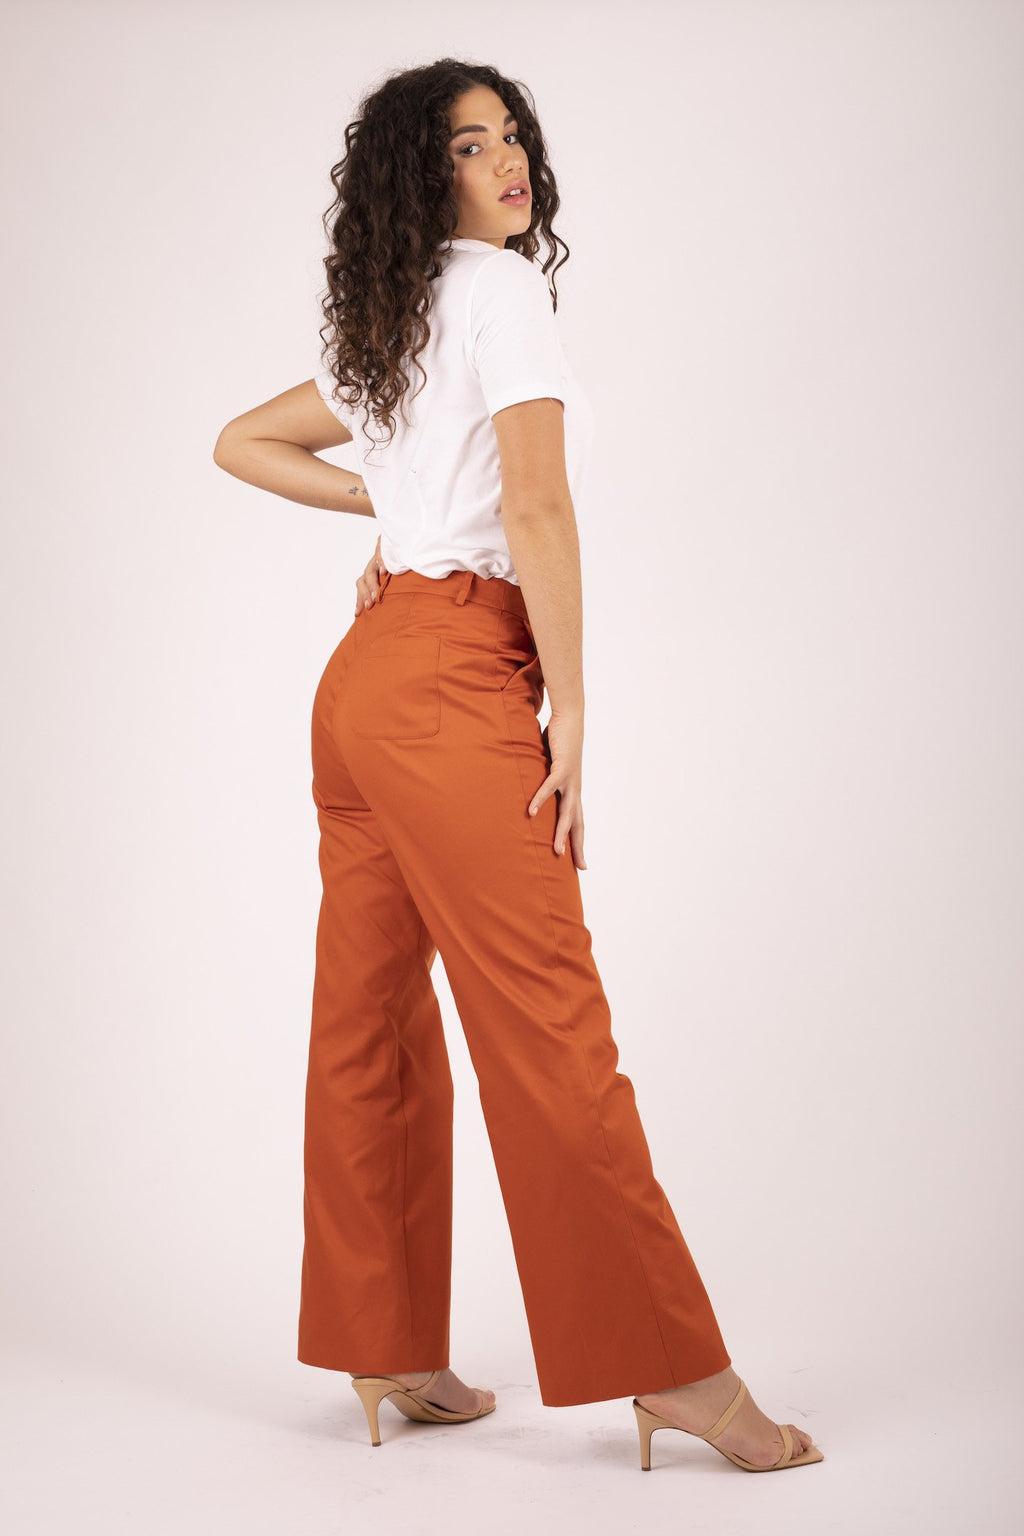 Sweet Potato Brooklyn Flare Pant Pants Ethical Sustainable Vegan Organic Australian fashion womens clothes